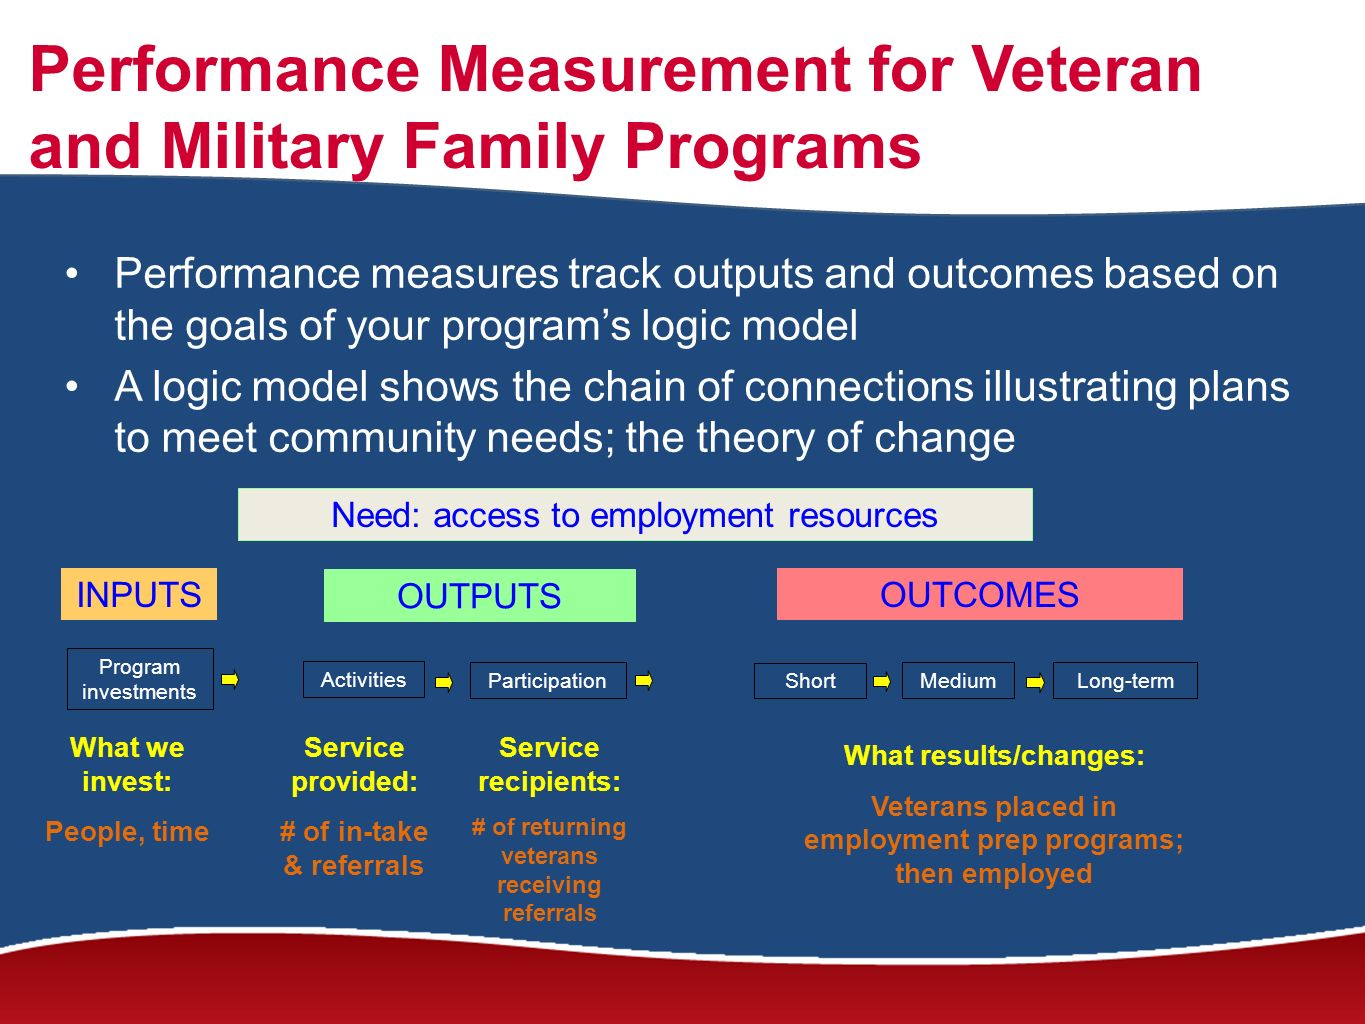 Performance Measurement for Veteran and Military Family Programs Performance measures track outputs and outcomes based on the goals of your programs logic model A logic model shows the chain of connections illustrating plans to meet community needs; the theory of change INPUTS OUTPUTS OUTCOMES Program investments Activities Participation Short MediumLong-term What we invest: People, time Service provided: # of in-take & referrals Service recipients: # of returning veterans receiving referrals What results/changes: Veterans placed in employment prep programs; then employed Need: access to employment resources